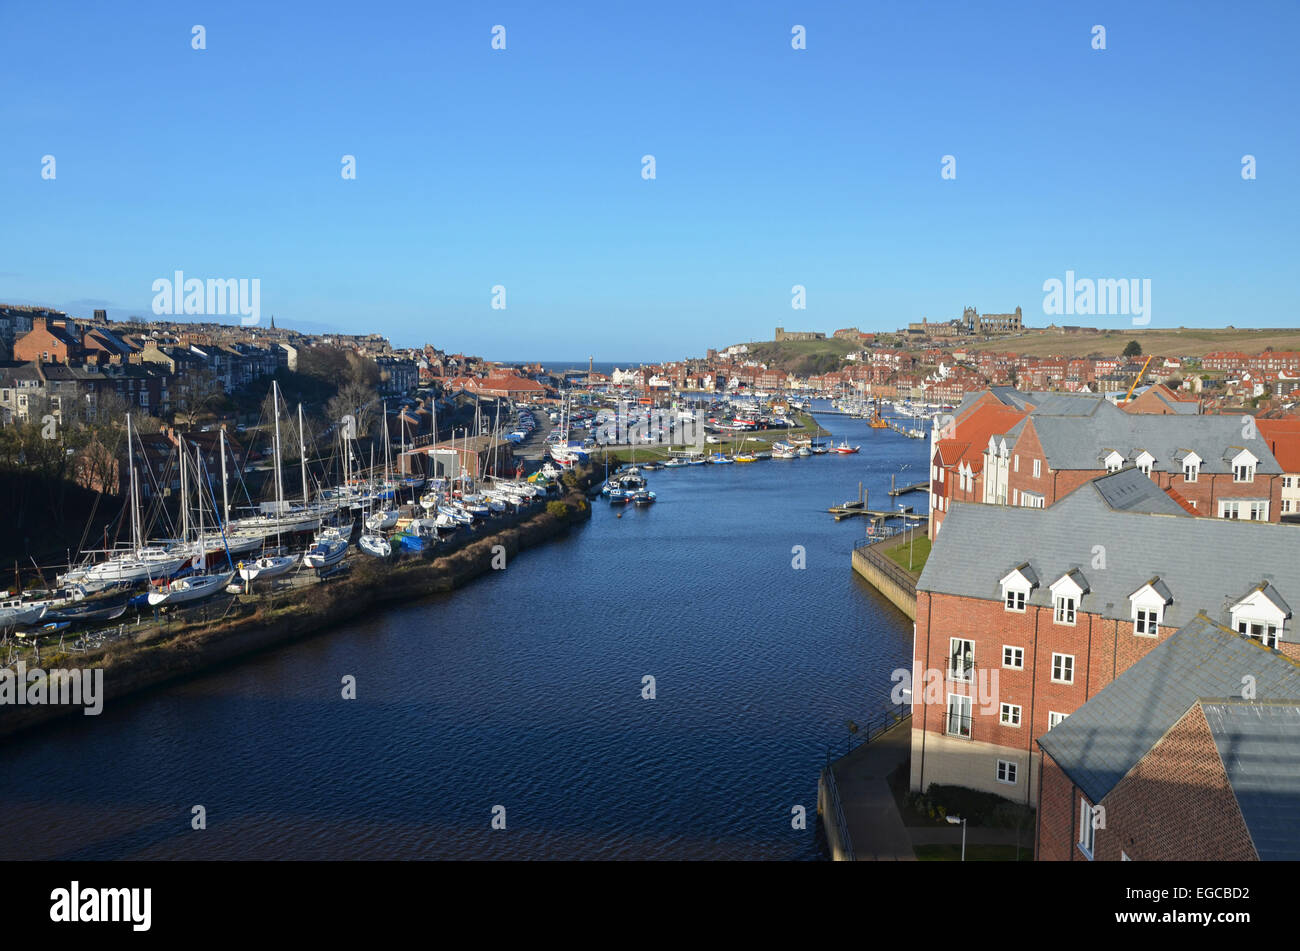 Whitby and the River Esk - Stock Image